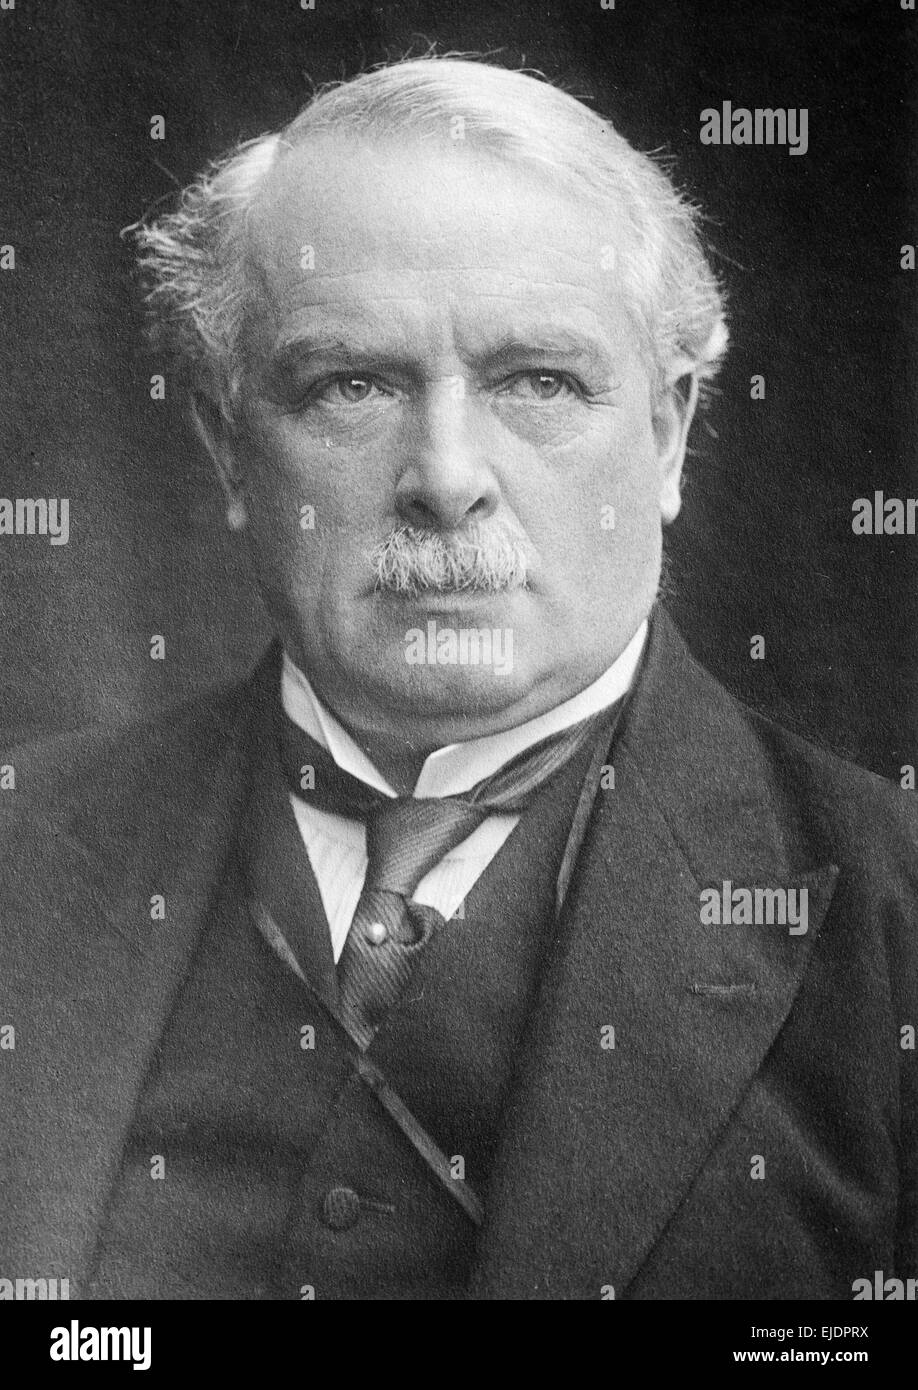 David Lloyd George, Prime Minister of the United Kingdom from 1916-1922 - Stock Image